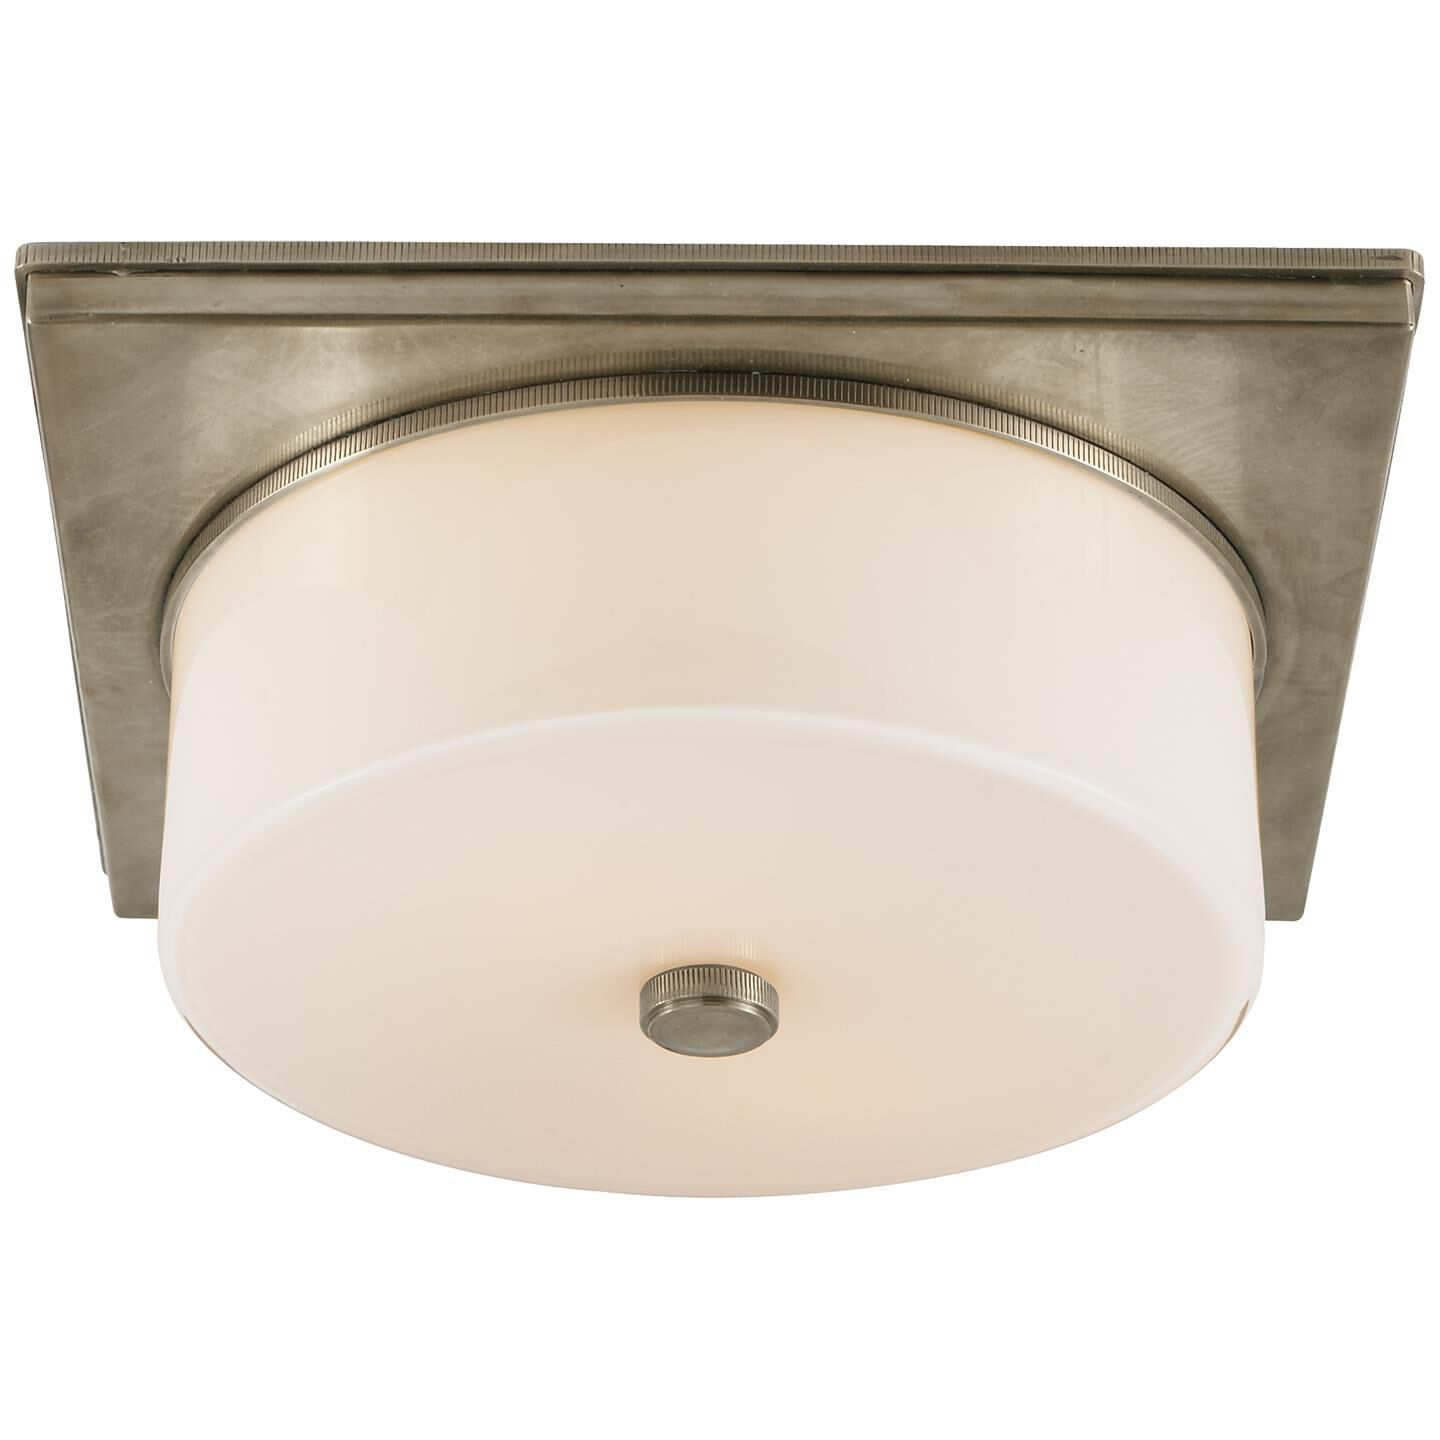 Thomas O'Brien Newhouse Block 12 Inch 2 Light Flush Mount by Visual Comfort and Co. Newhouse Block Flush Mount by Visual Comfort and Co. - TOB 4216AN-WG